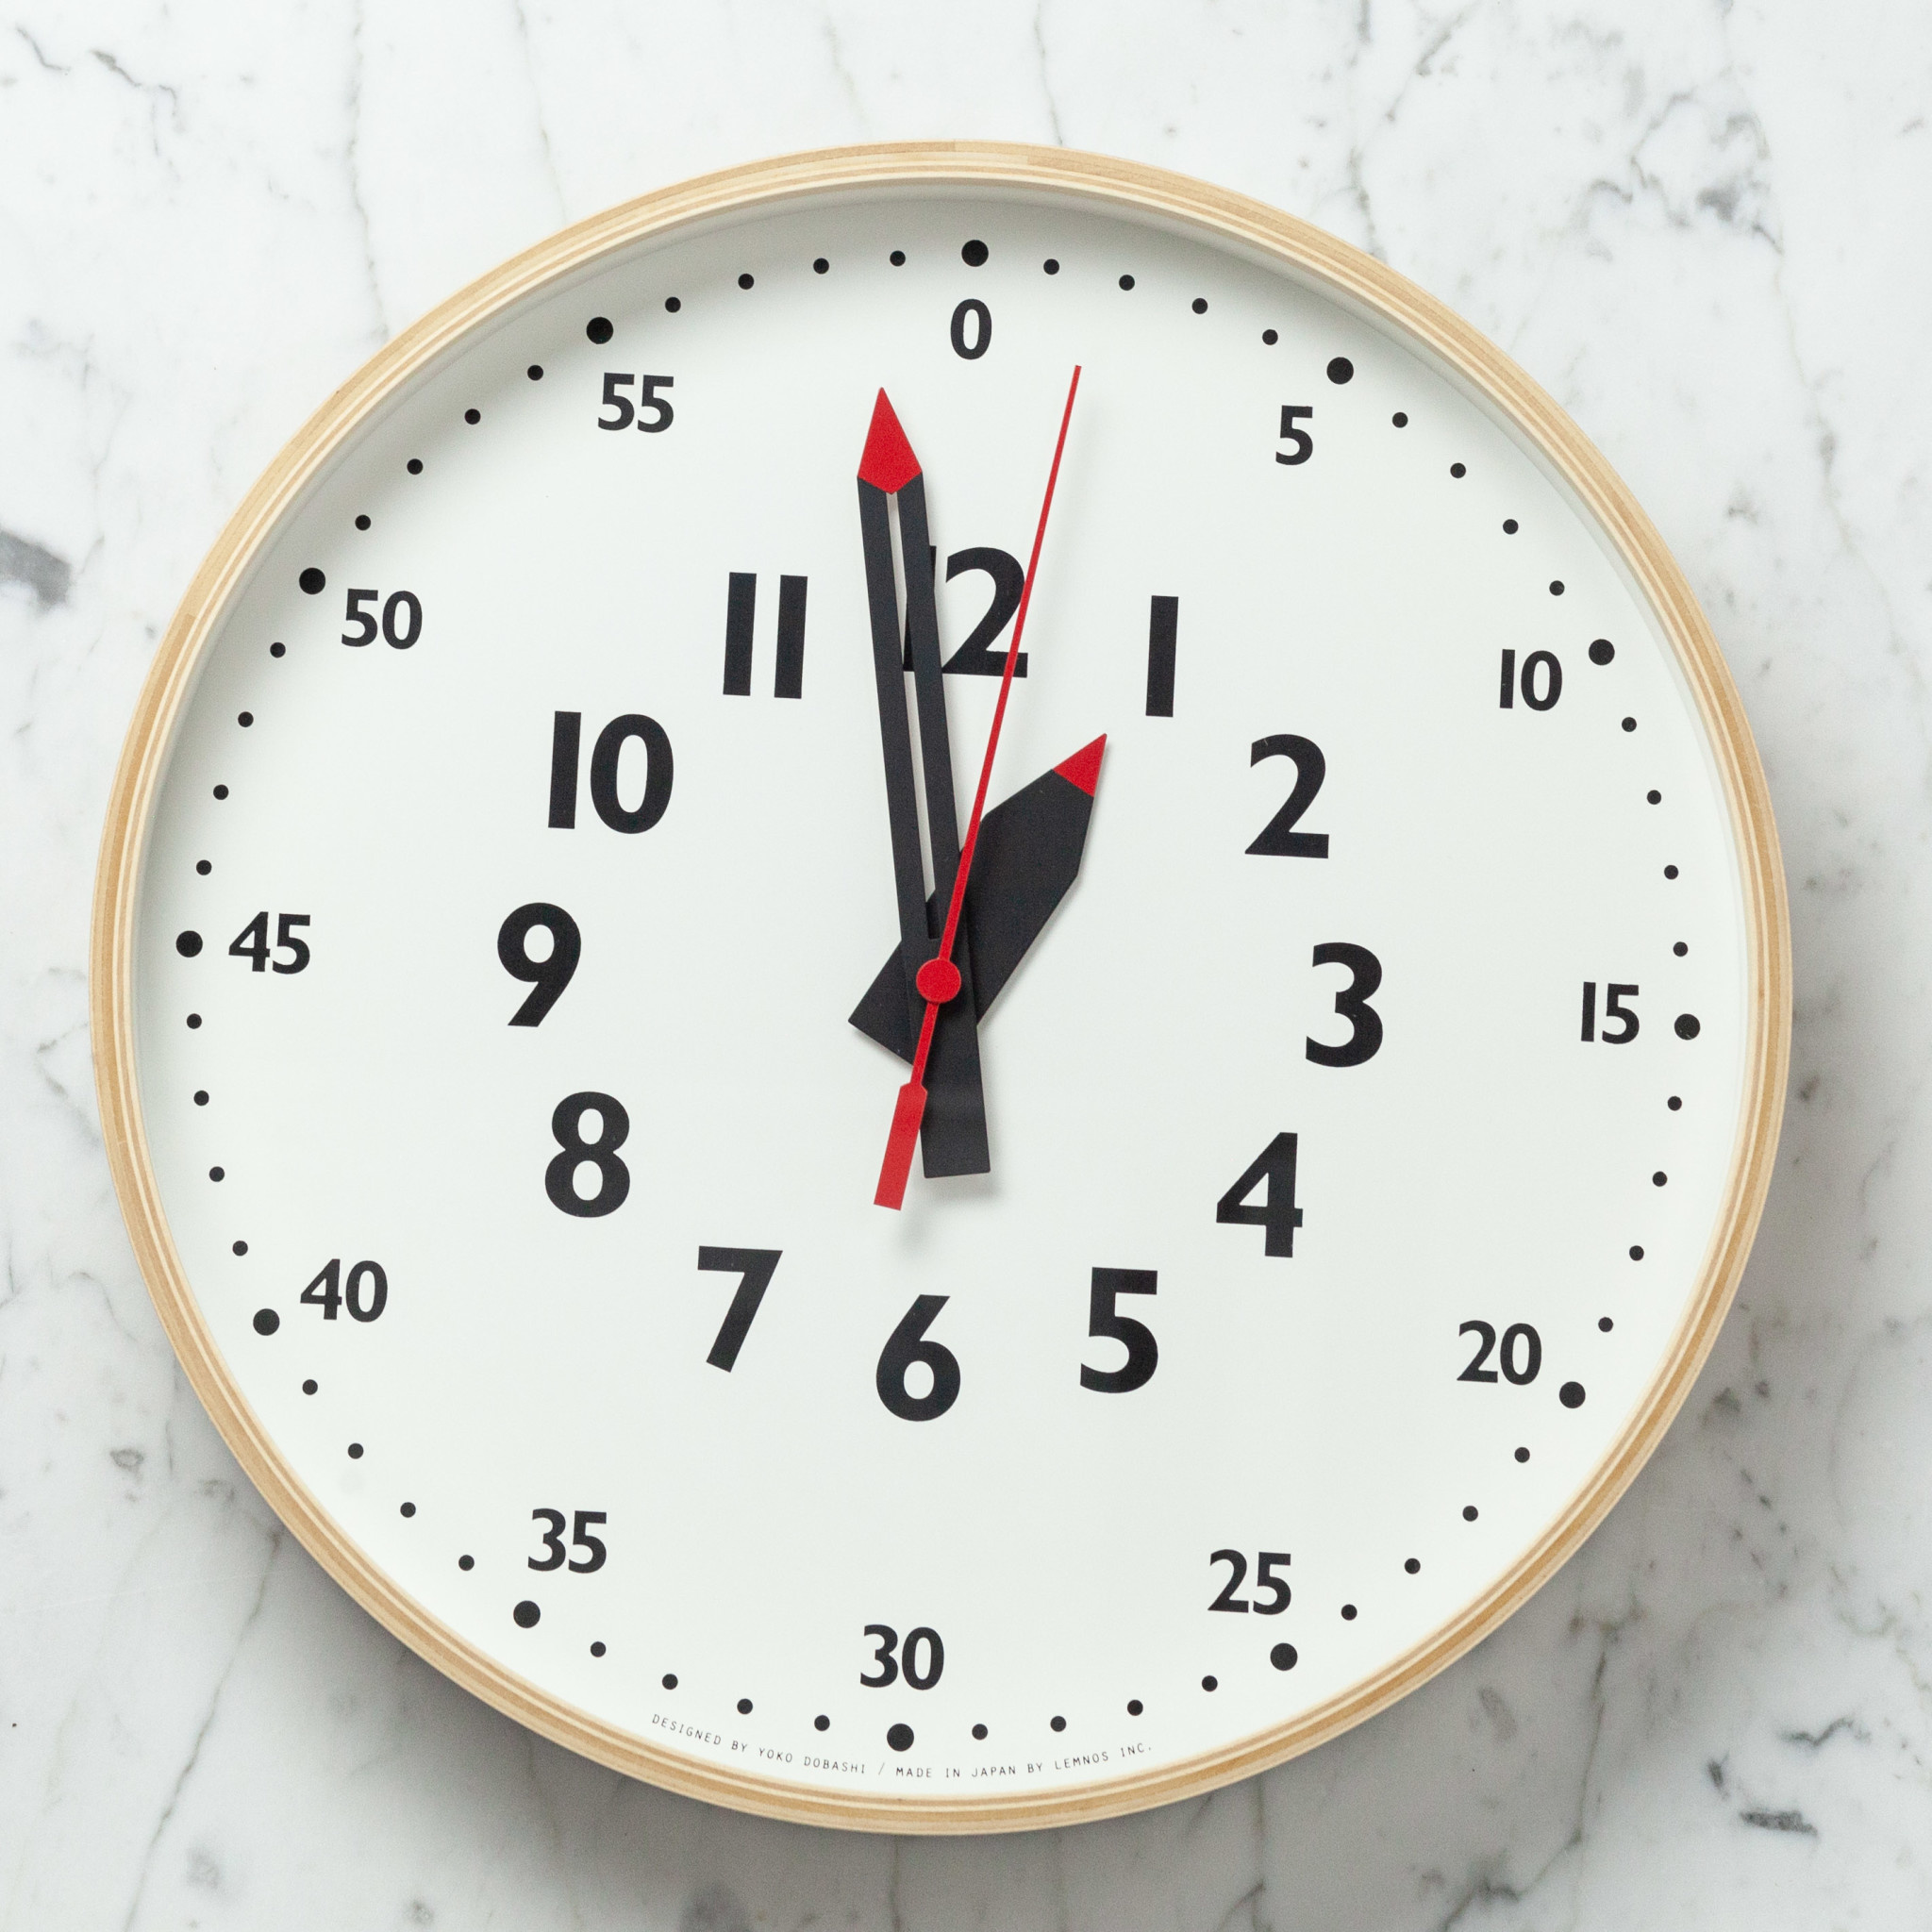 Fun Pun Wall Clock with Second Hand - White